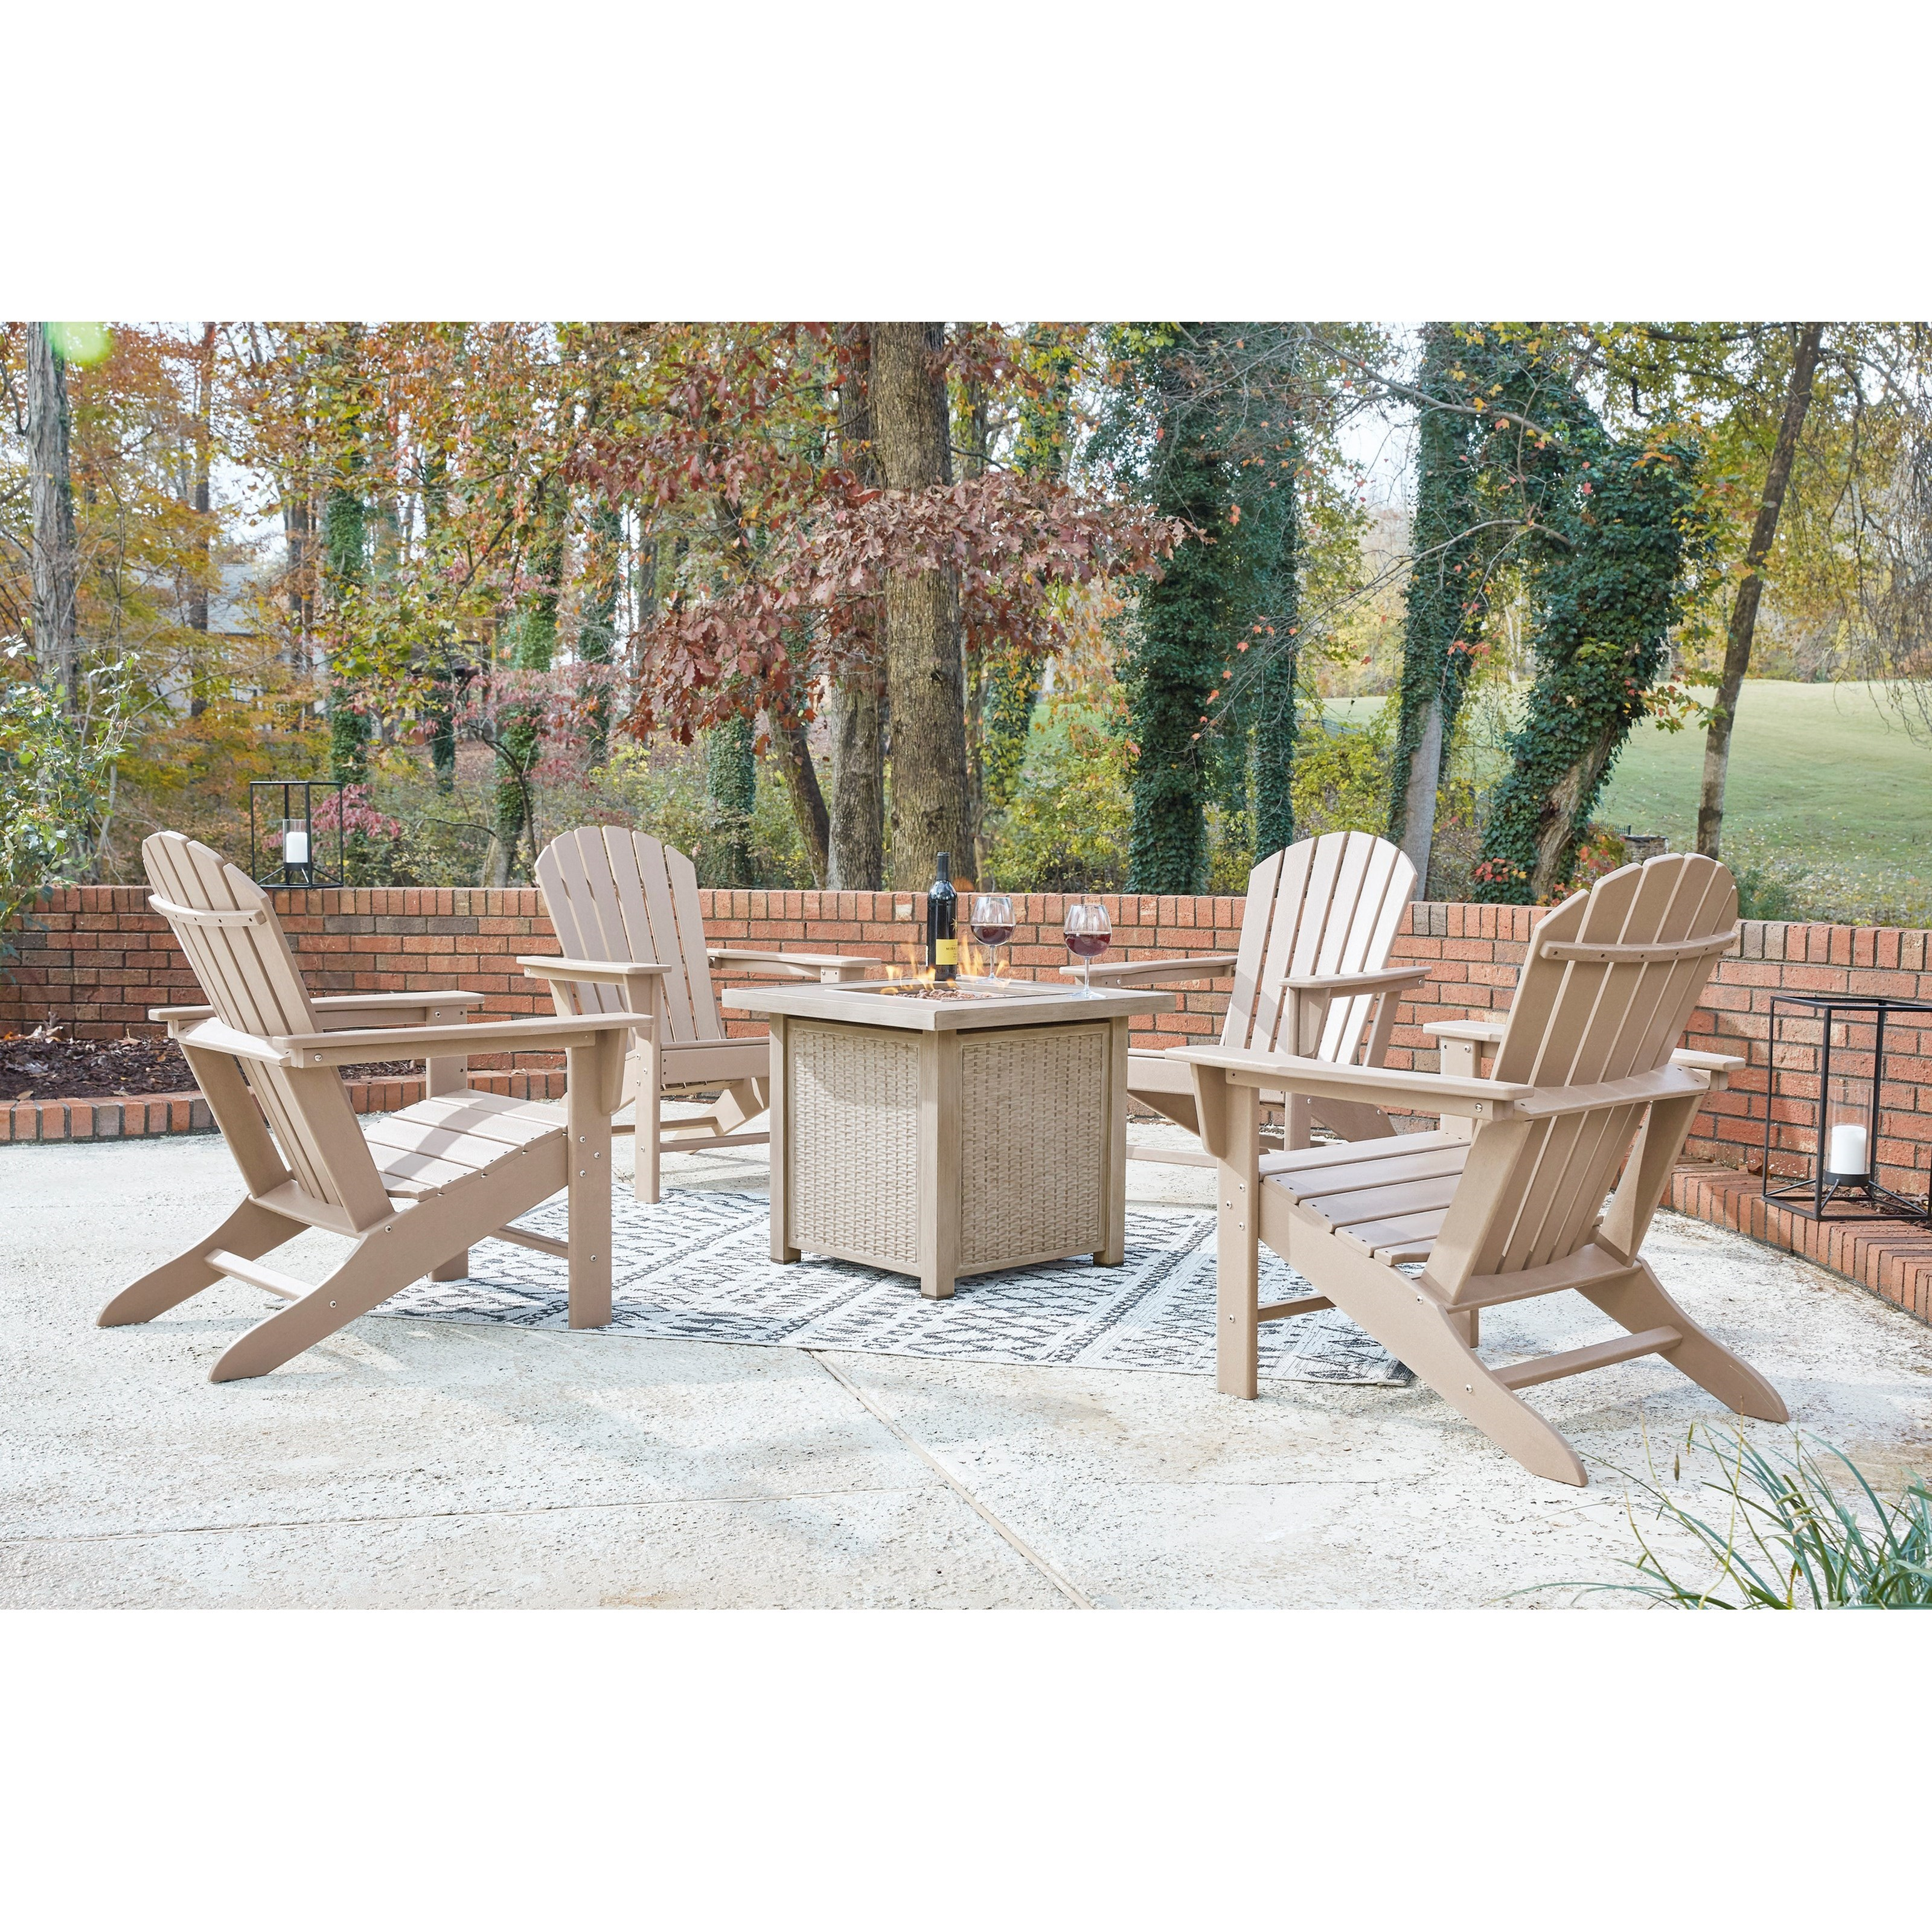 Lyle 5-Piece Square Fire Pit Set by Ashley (Signature Design) at Johnny Janosik